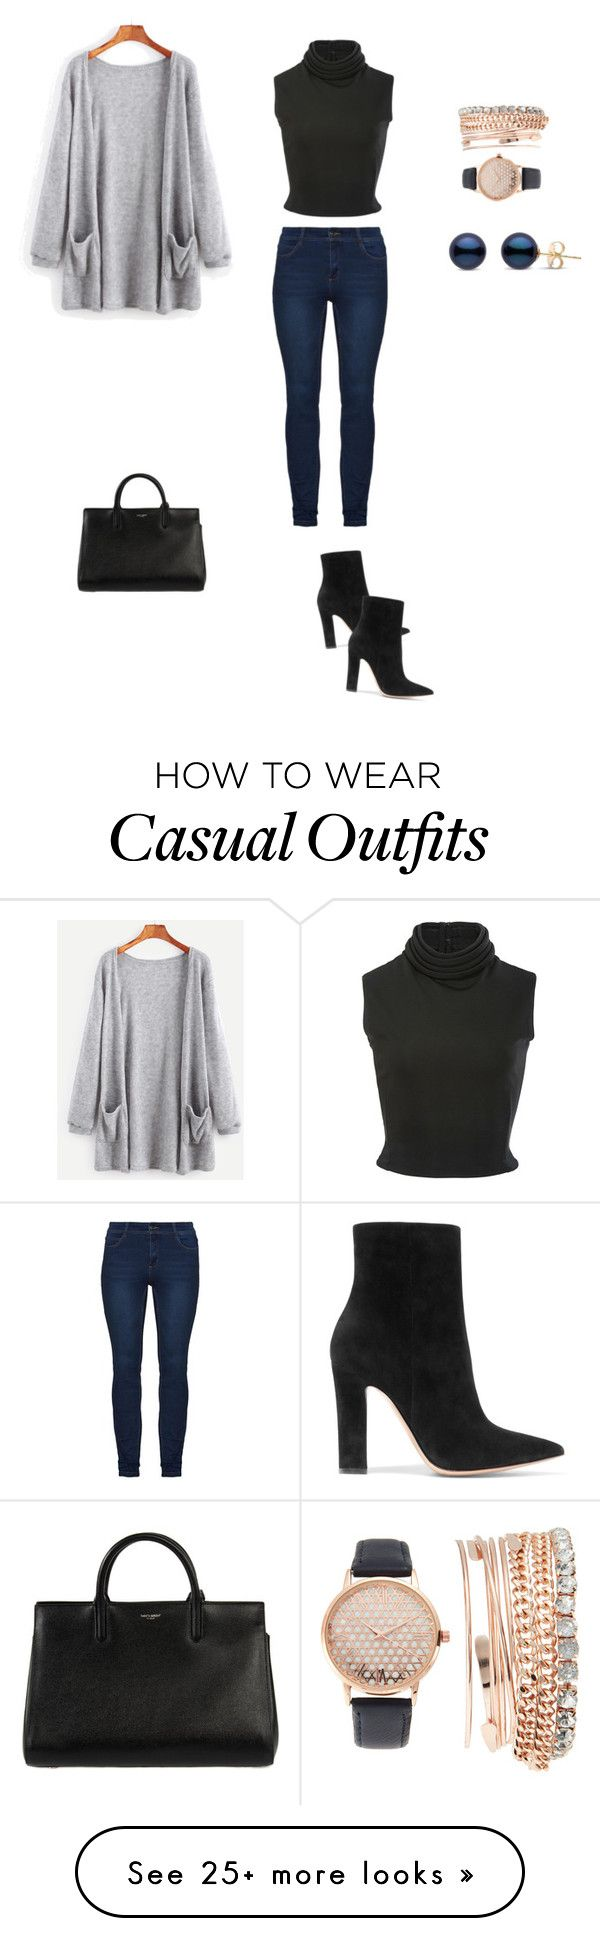 """casual -dressy outfit"" by mrashui on Polyvore featuring Gianvito Rossi, Brandon Maxwell, Yves Saint Laurent and Jessica Carlyle"